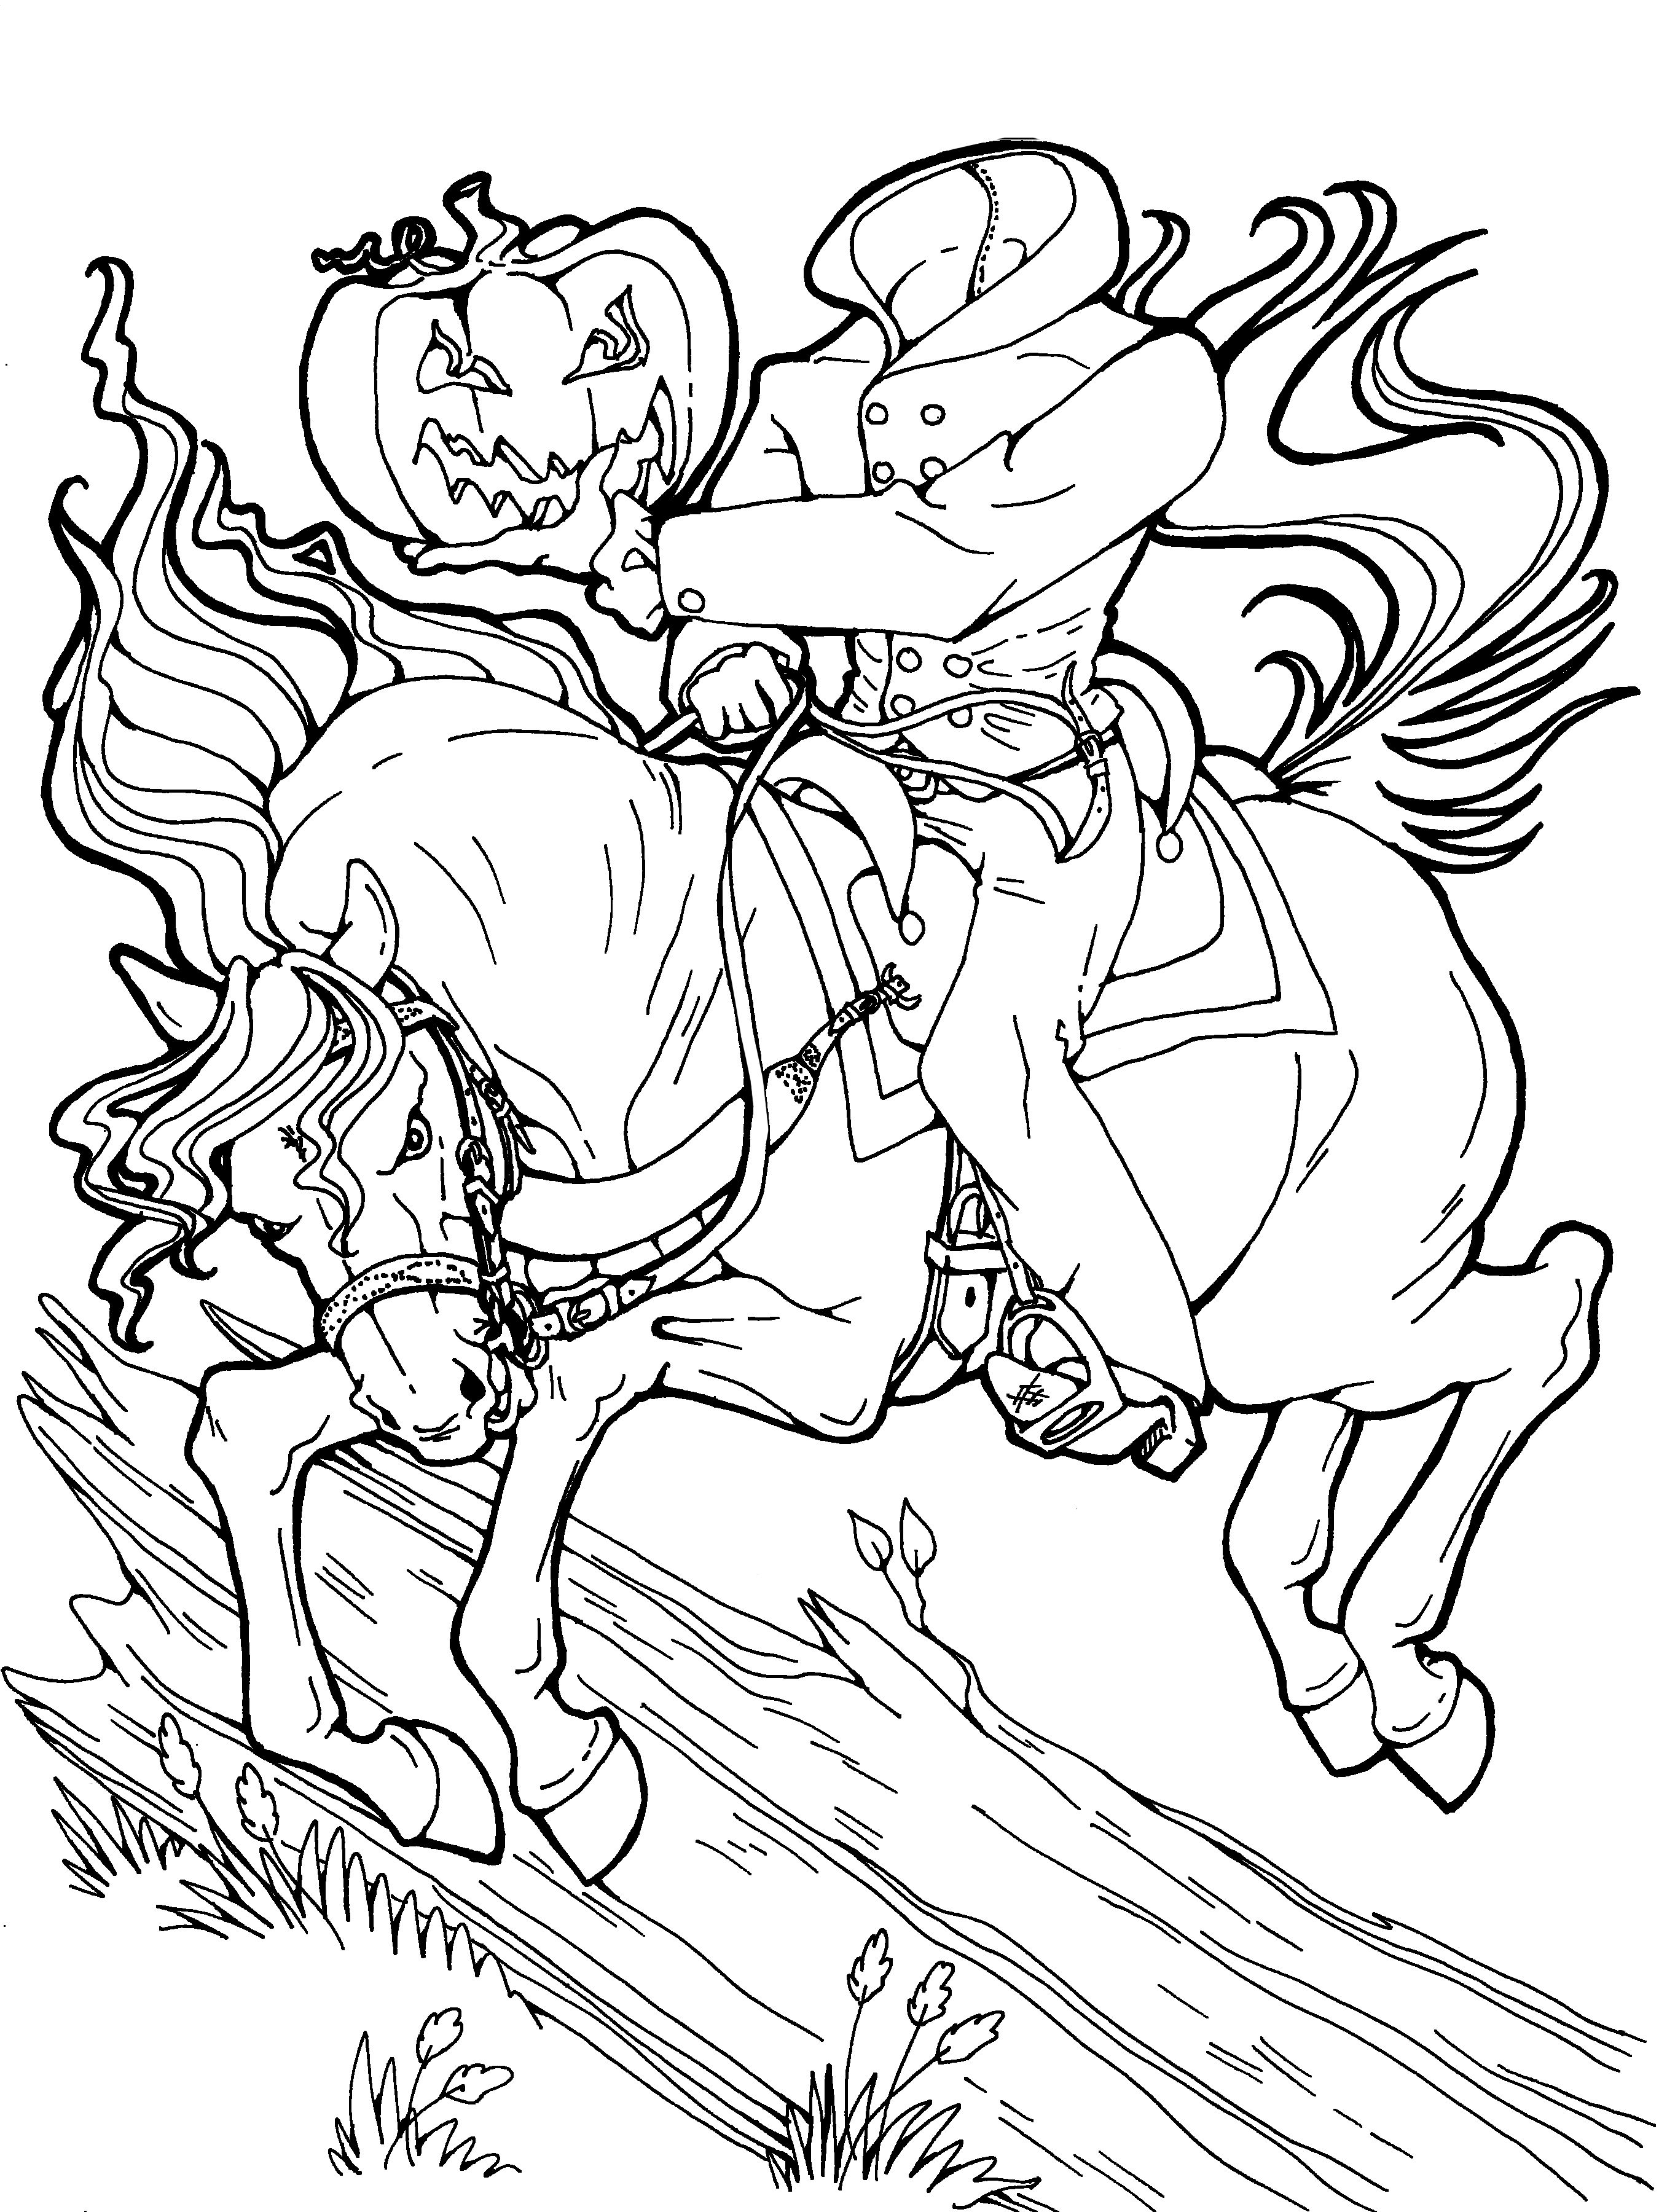 Best Of Adult Coloring Pages Gang Member Gallery